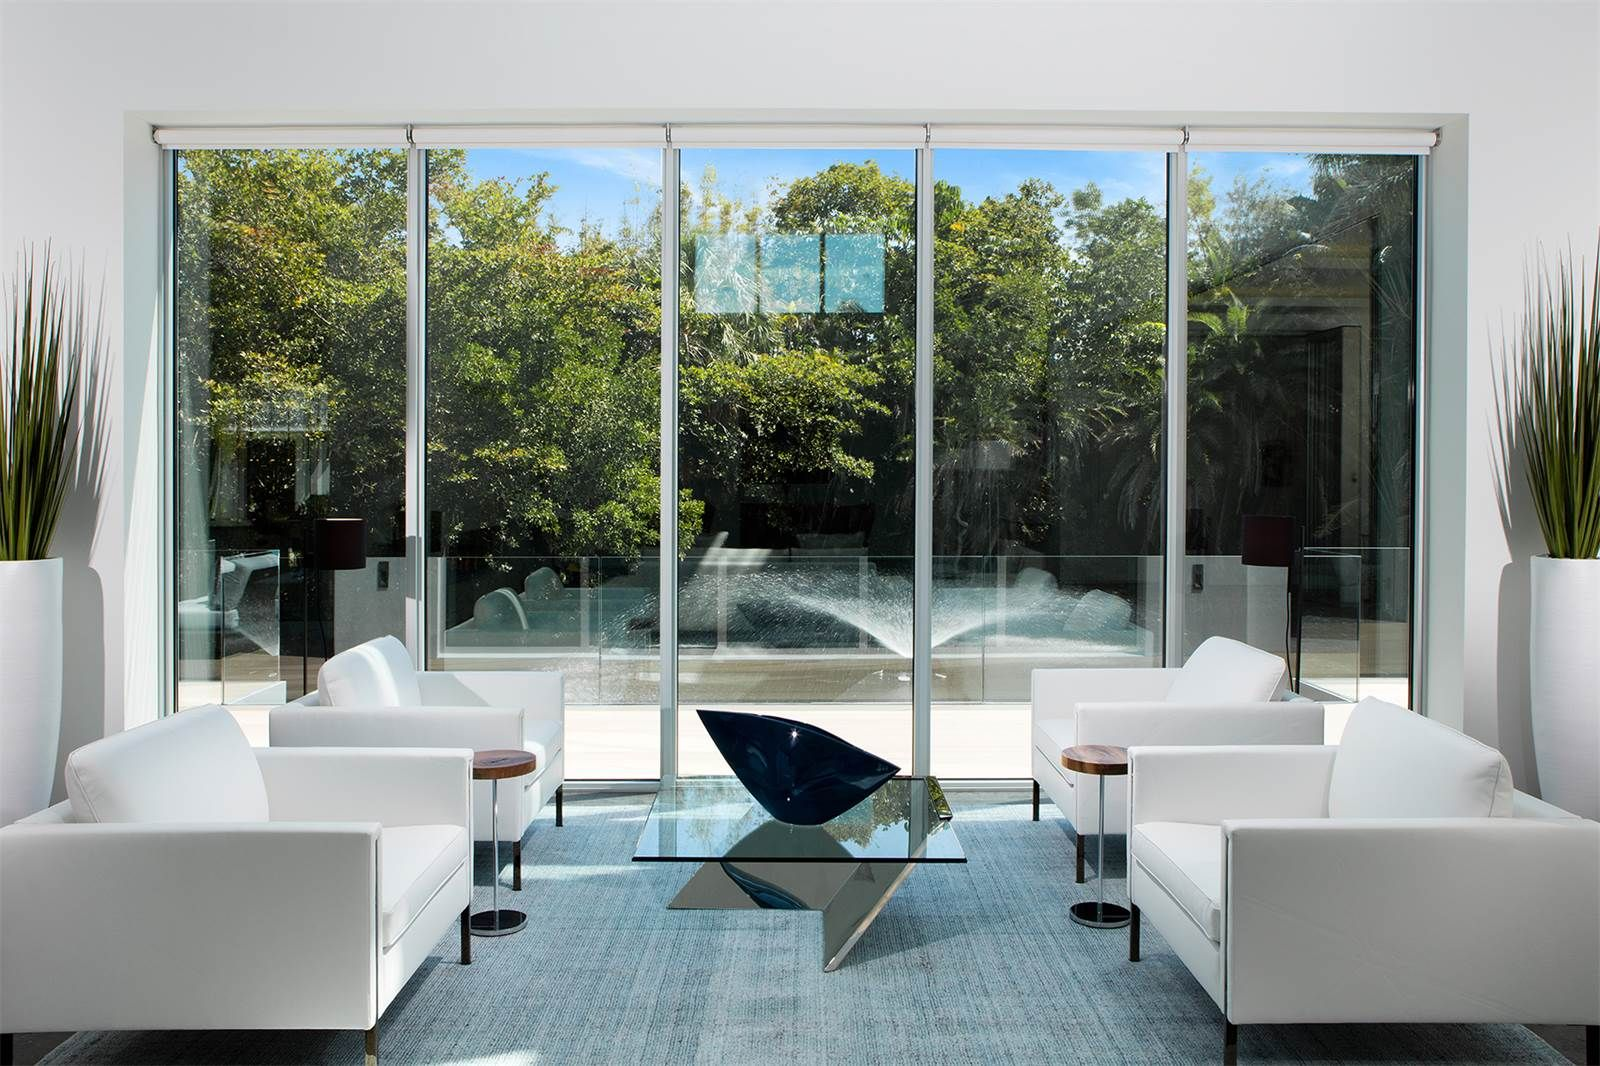 Minimalist window shades enhance the view by blending in with the homes contemporary interior